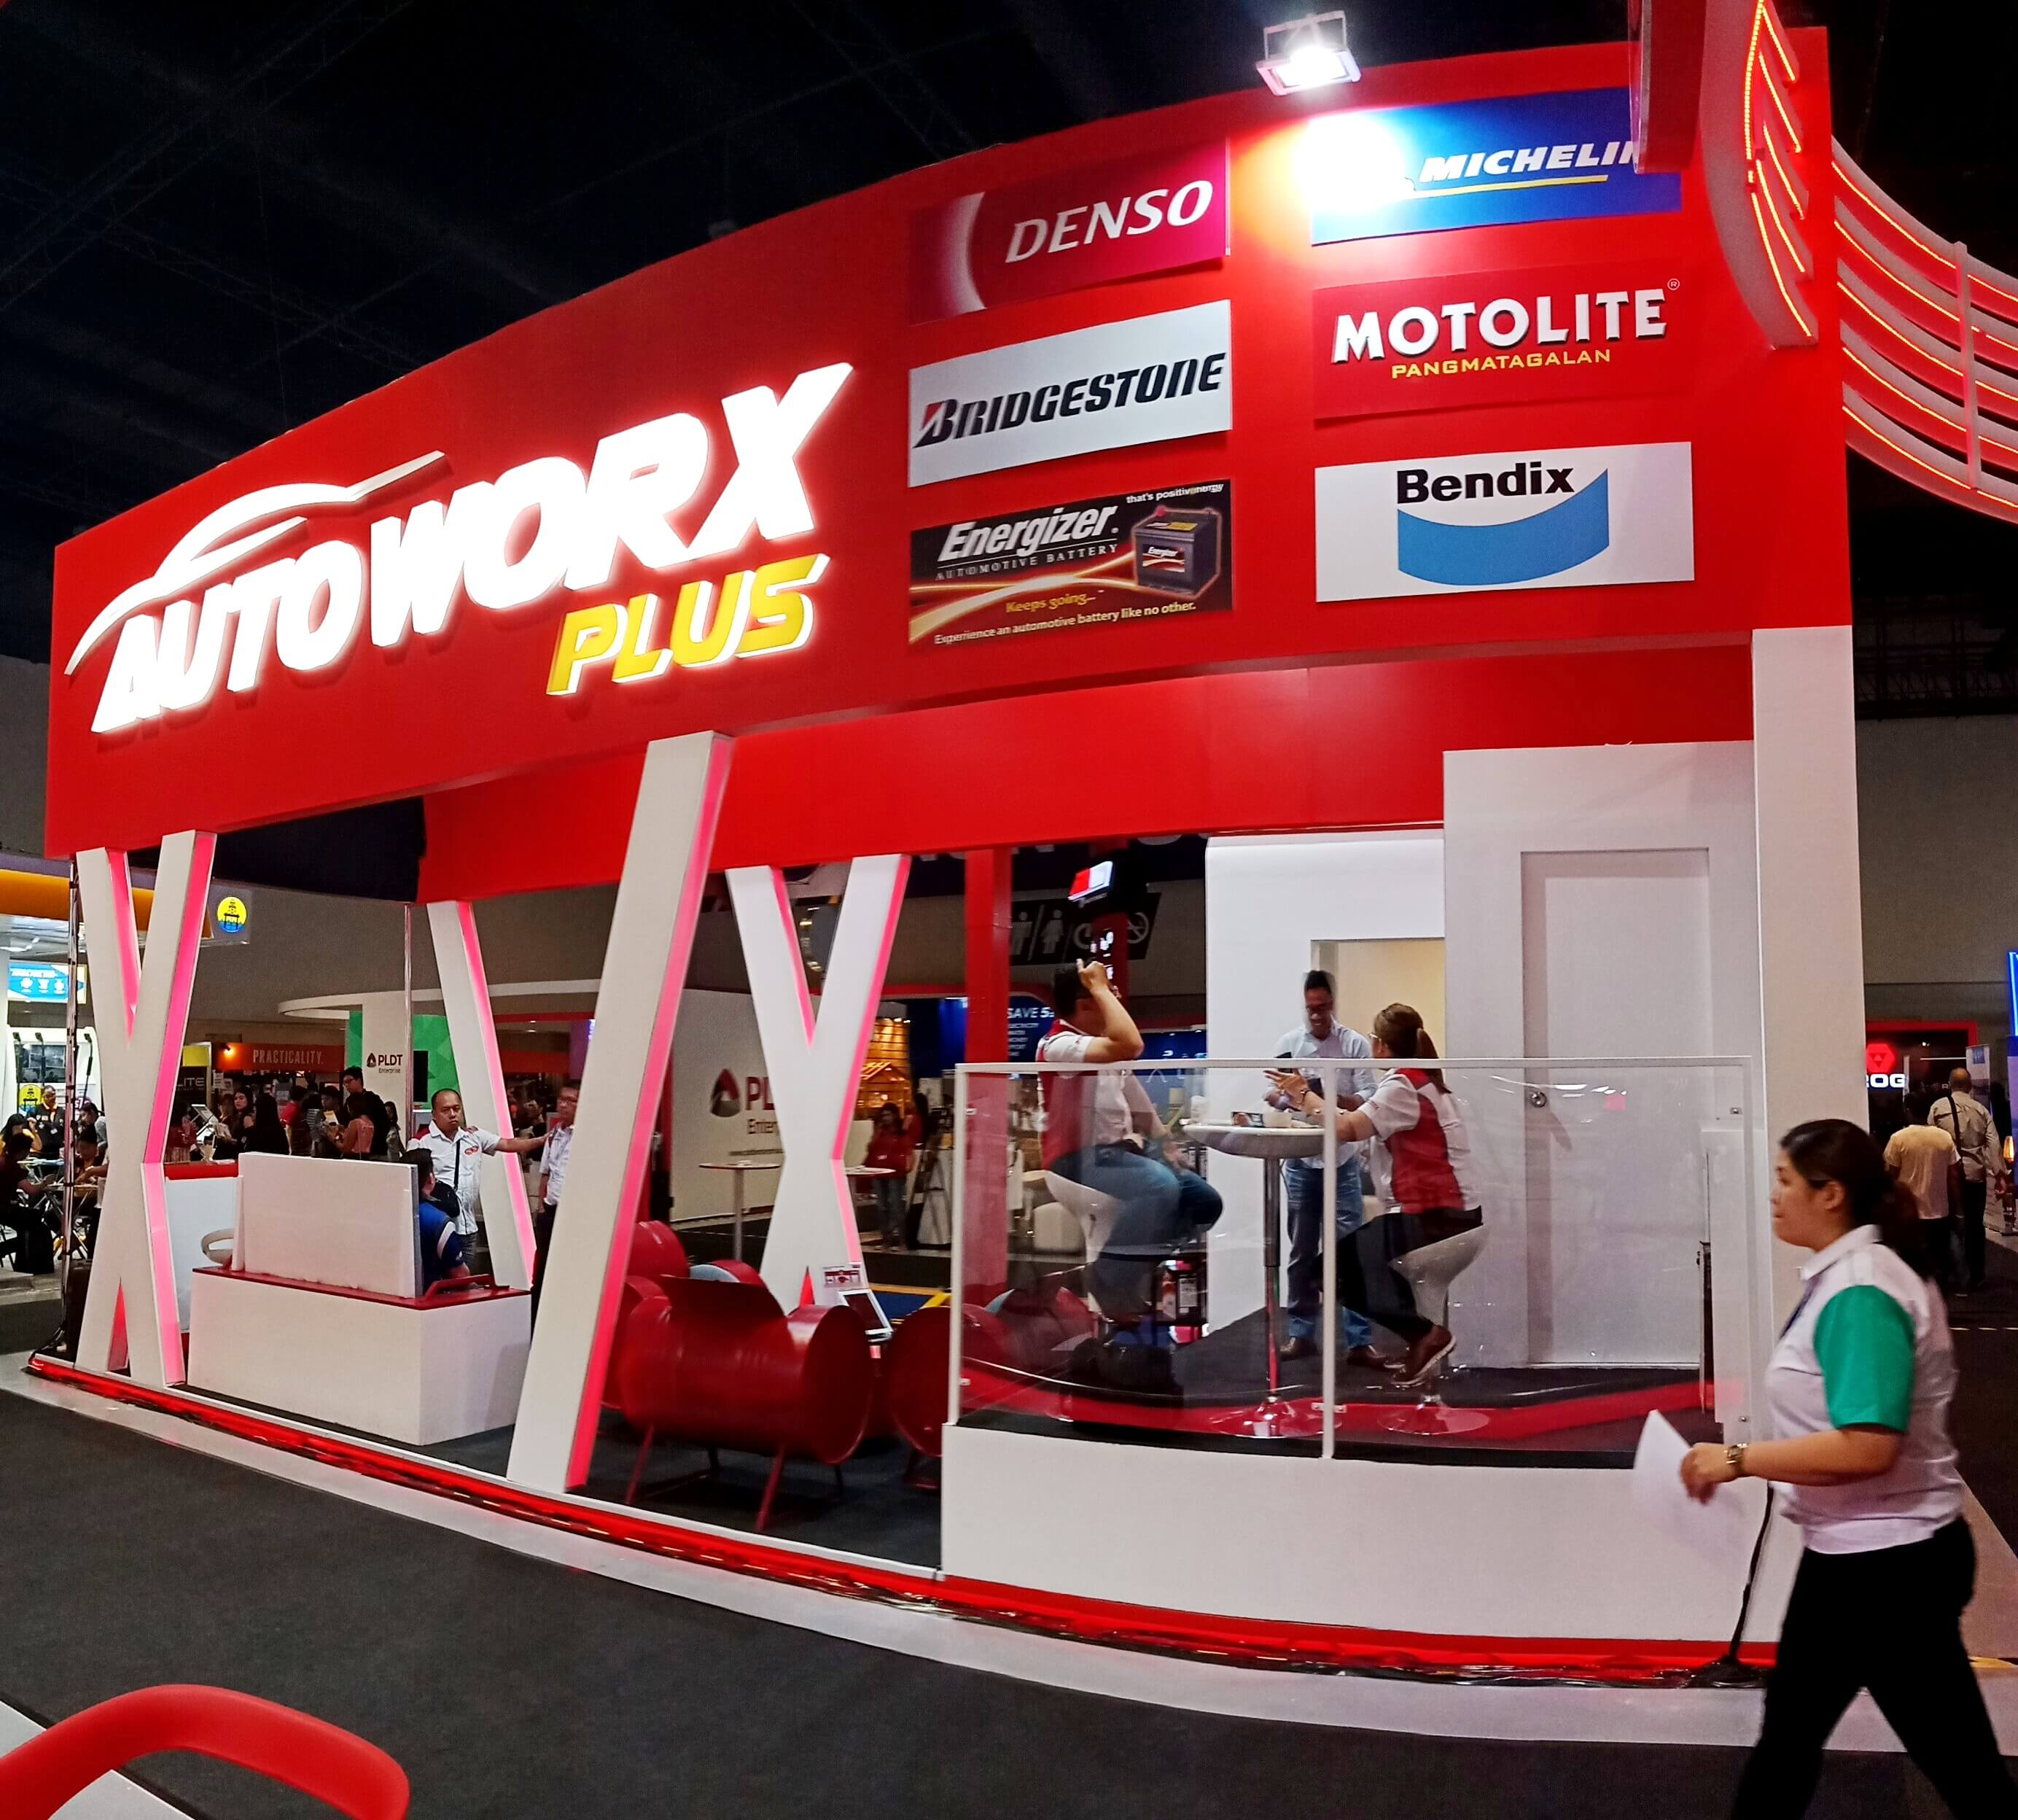 Phoenix Petroleum wins seventh Best Booth Design award at Franchise